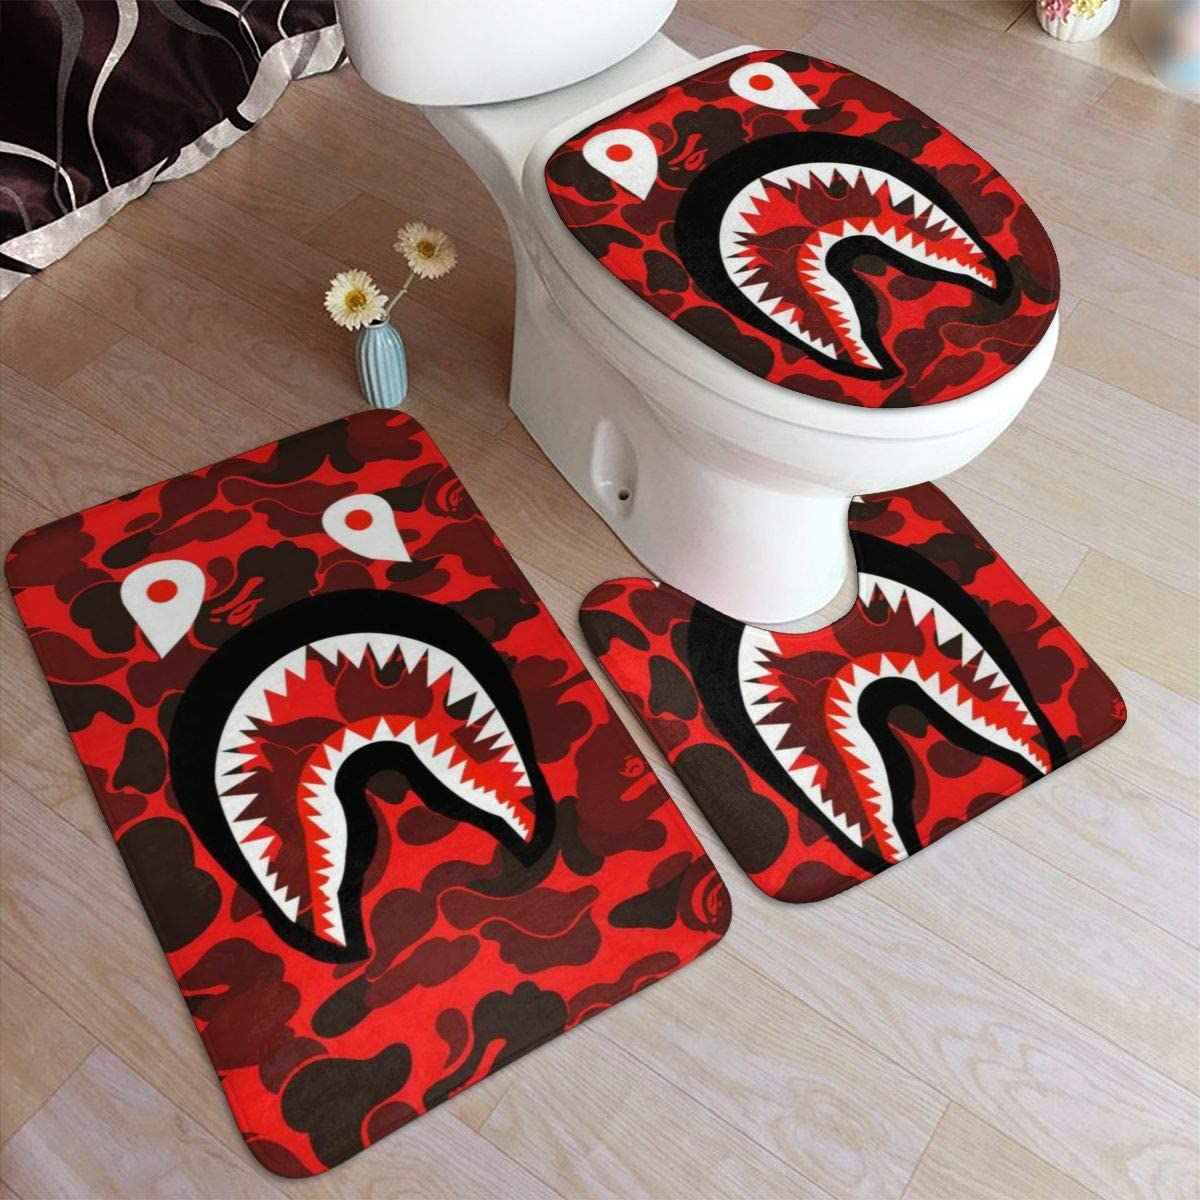 DISINIBITA Bath Mat Bape Blood Shark Pattern Fashion Bathroom Carpet Rug Non Slip 3 Piece Bathroom Mat Set